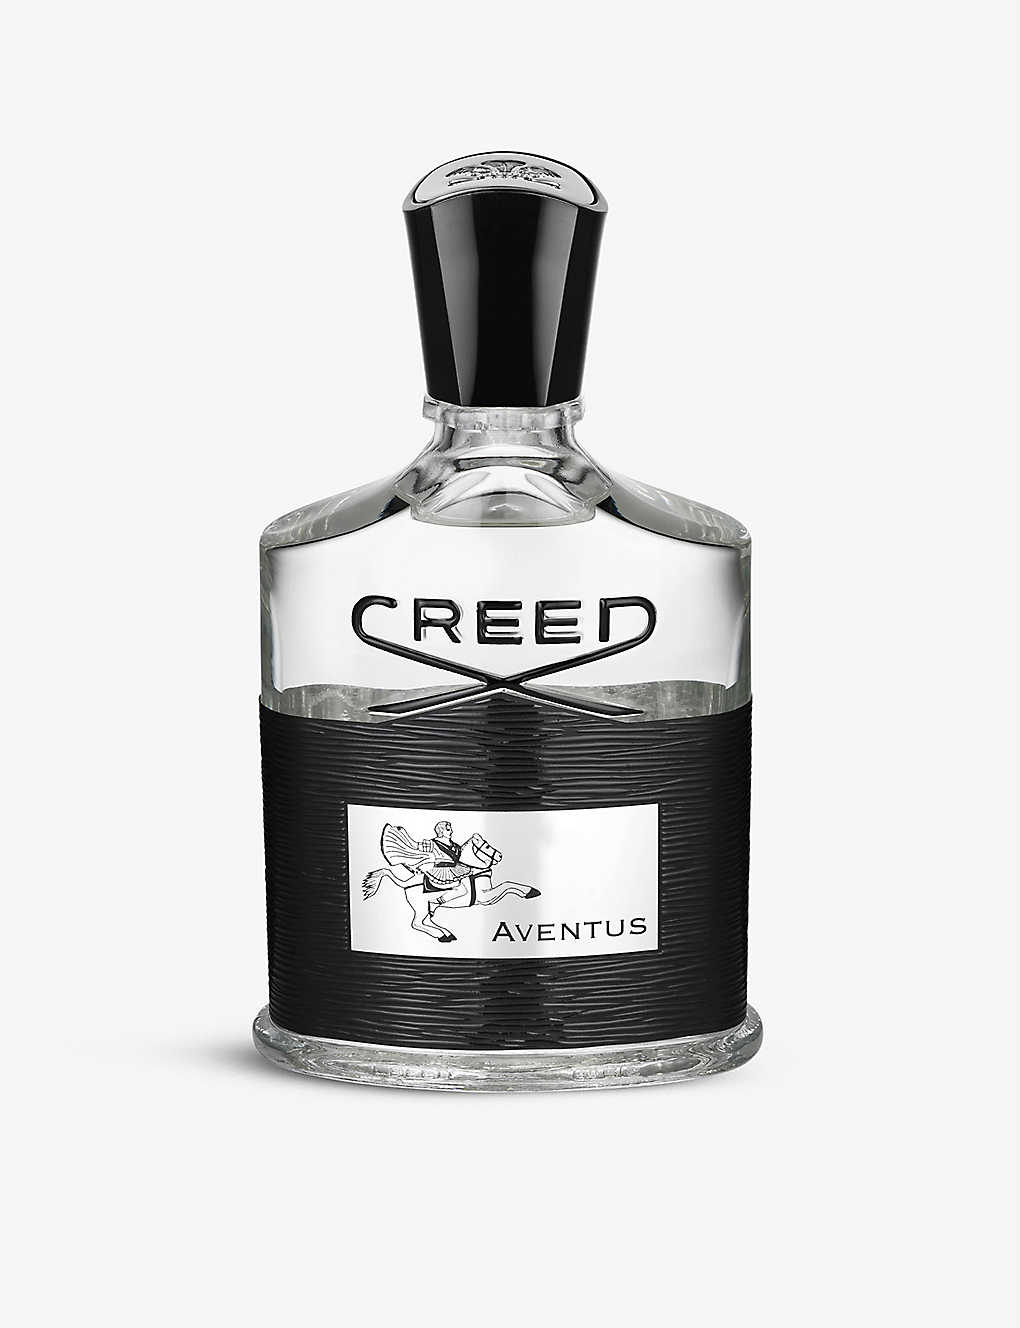 Creed Beauty Selfridges Shop Online